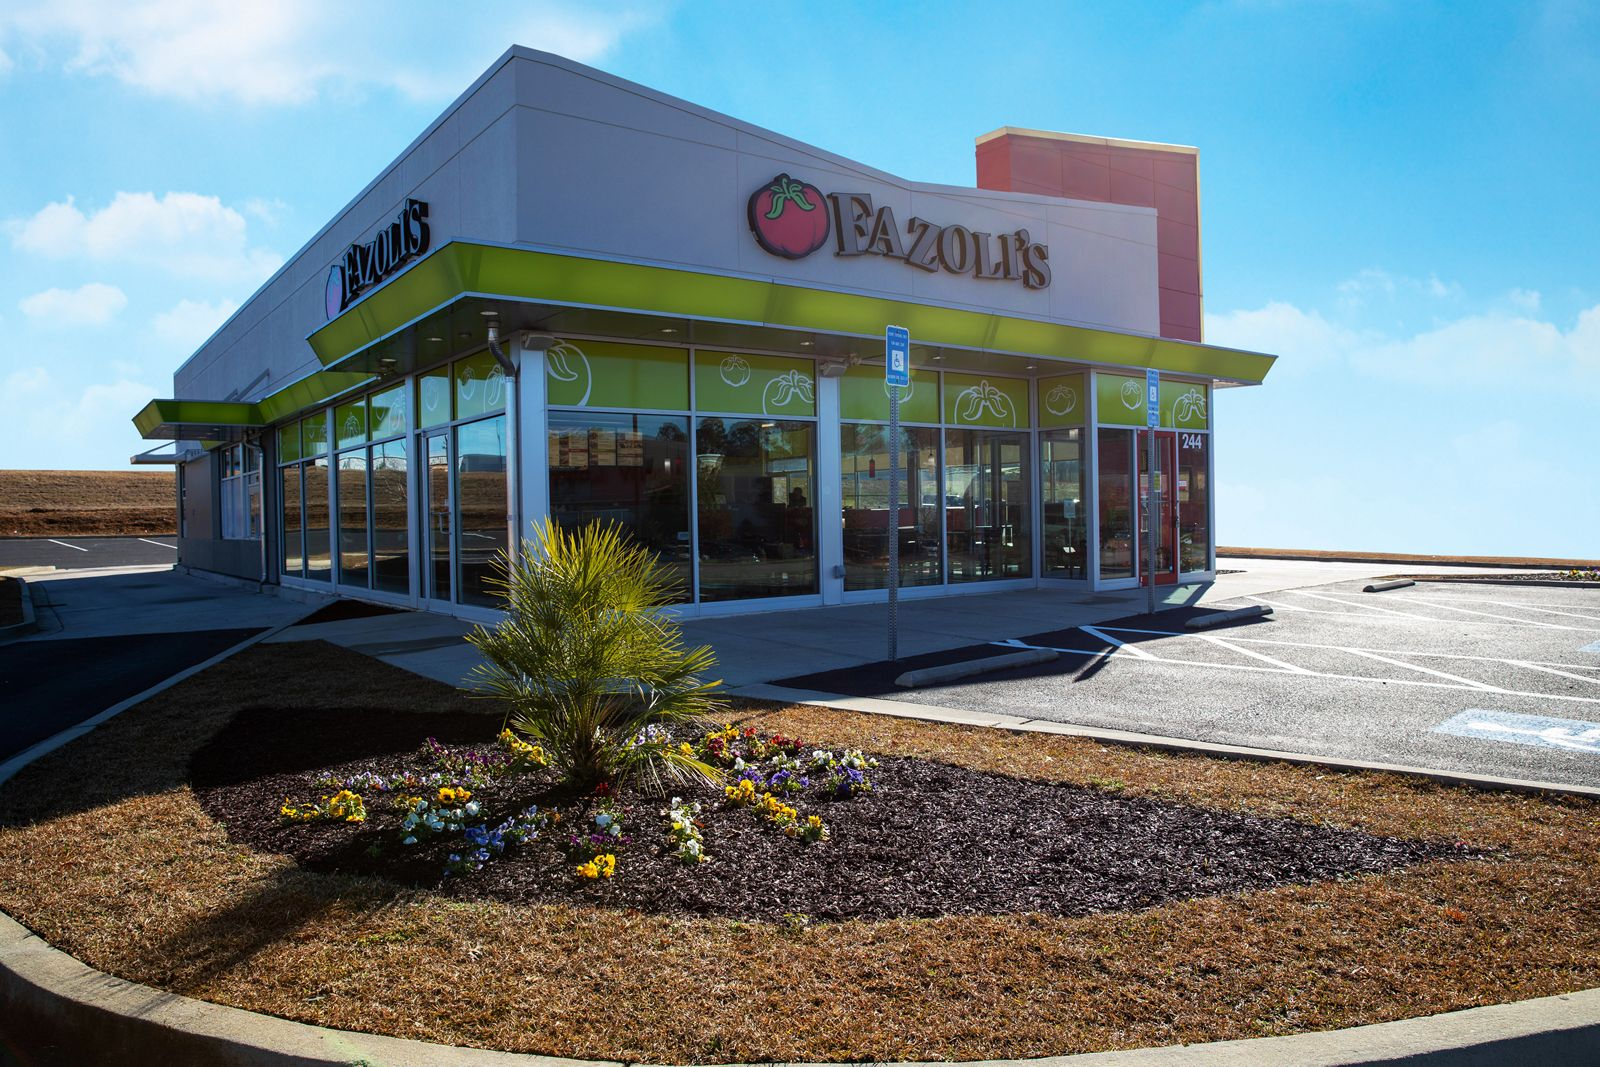 January 2021 Marks Fazoli's Highest Sales Numbers in Brand's 33-Year History